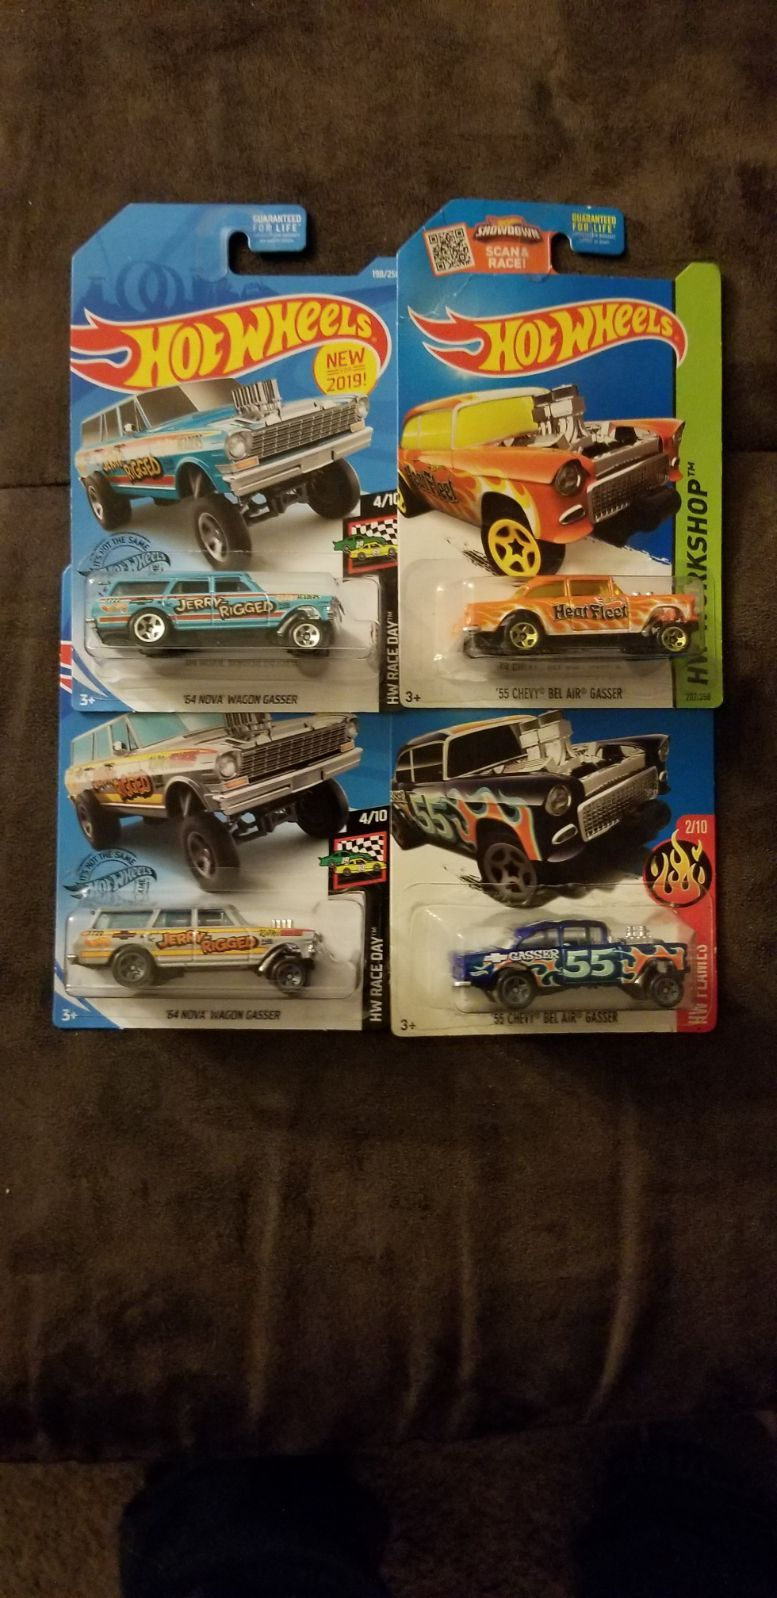 4 Hot Wheels Gassers 2 Jerry Rigged Wagons And 2 55 Bel Air